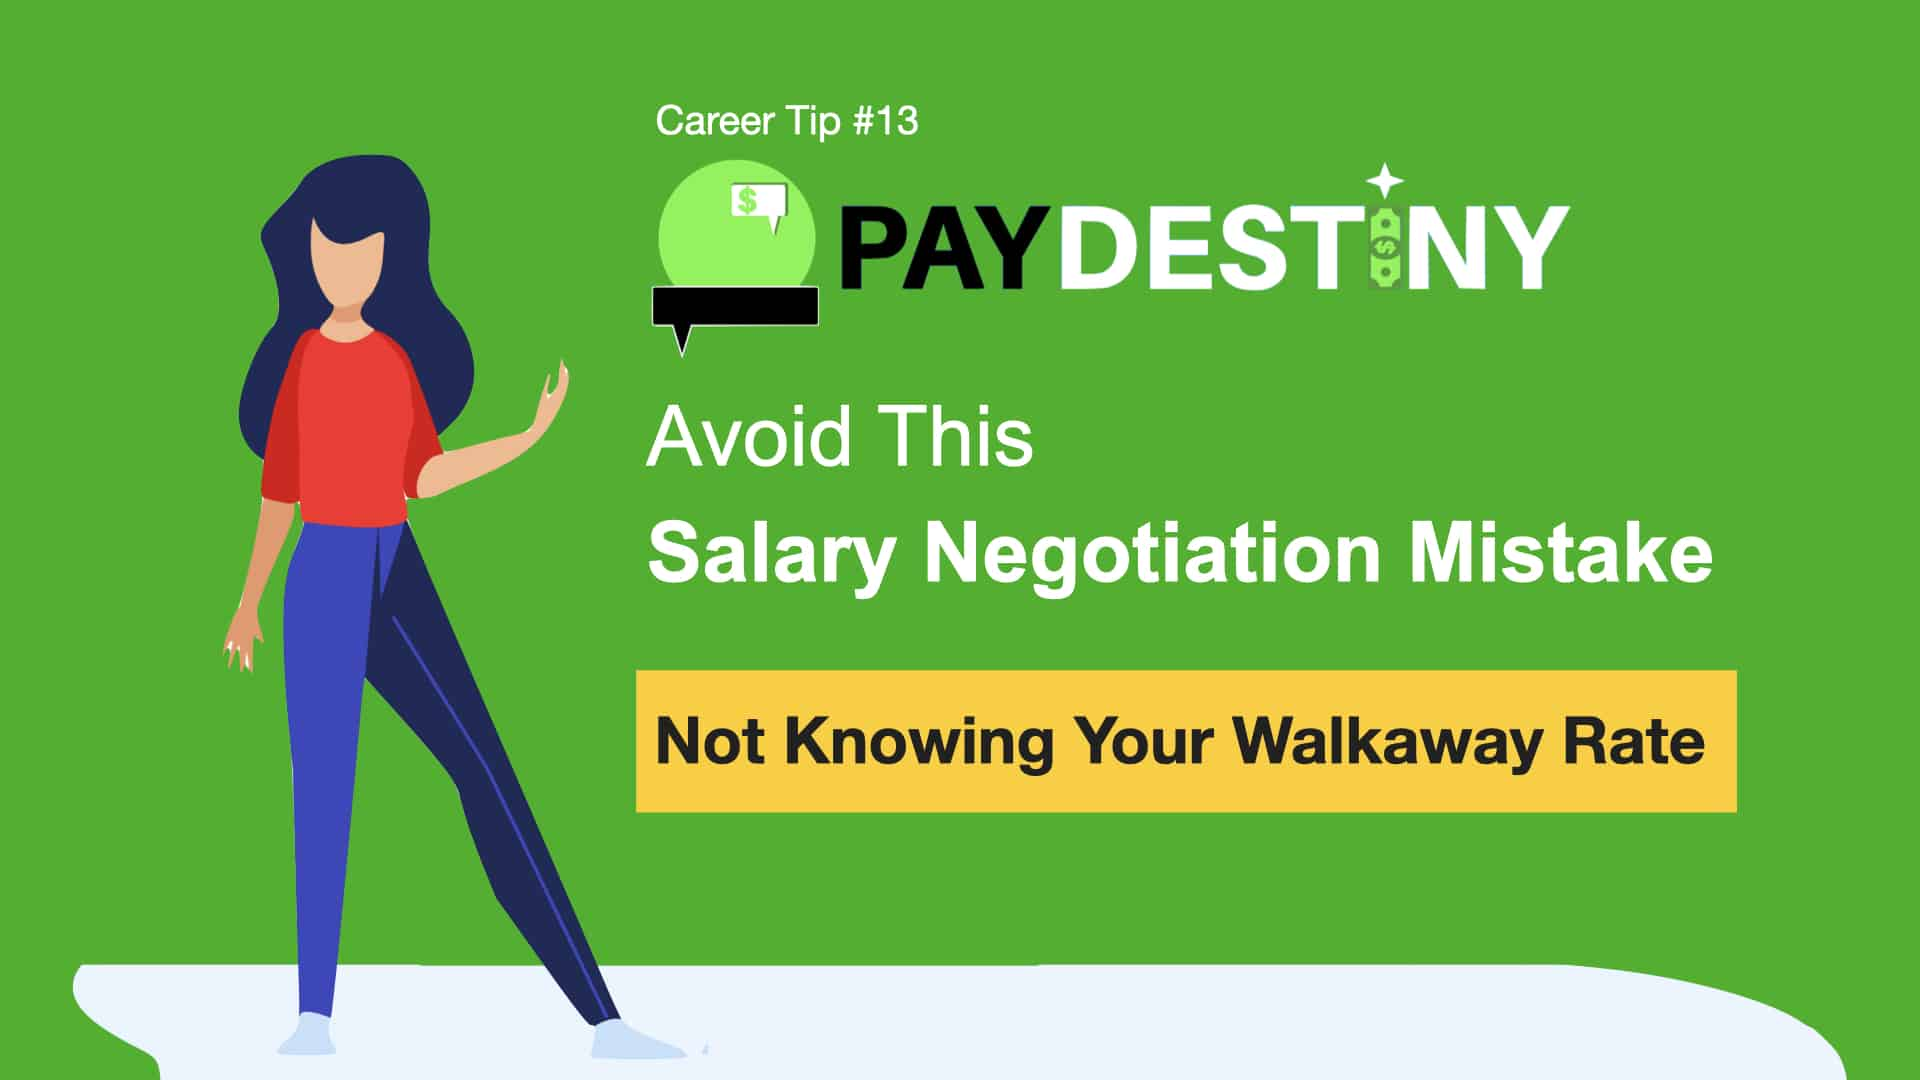 Salary Negotiation Mistake (Not Knowing Your Walkway Rate)